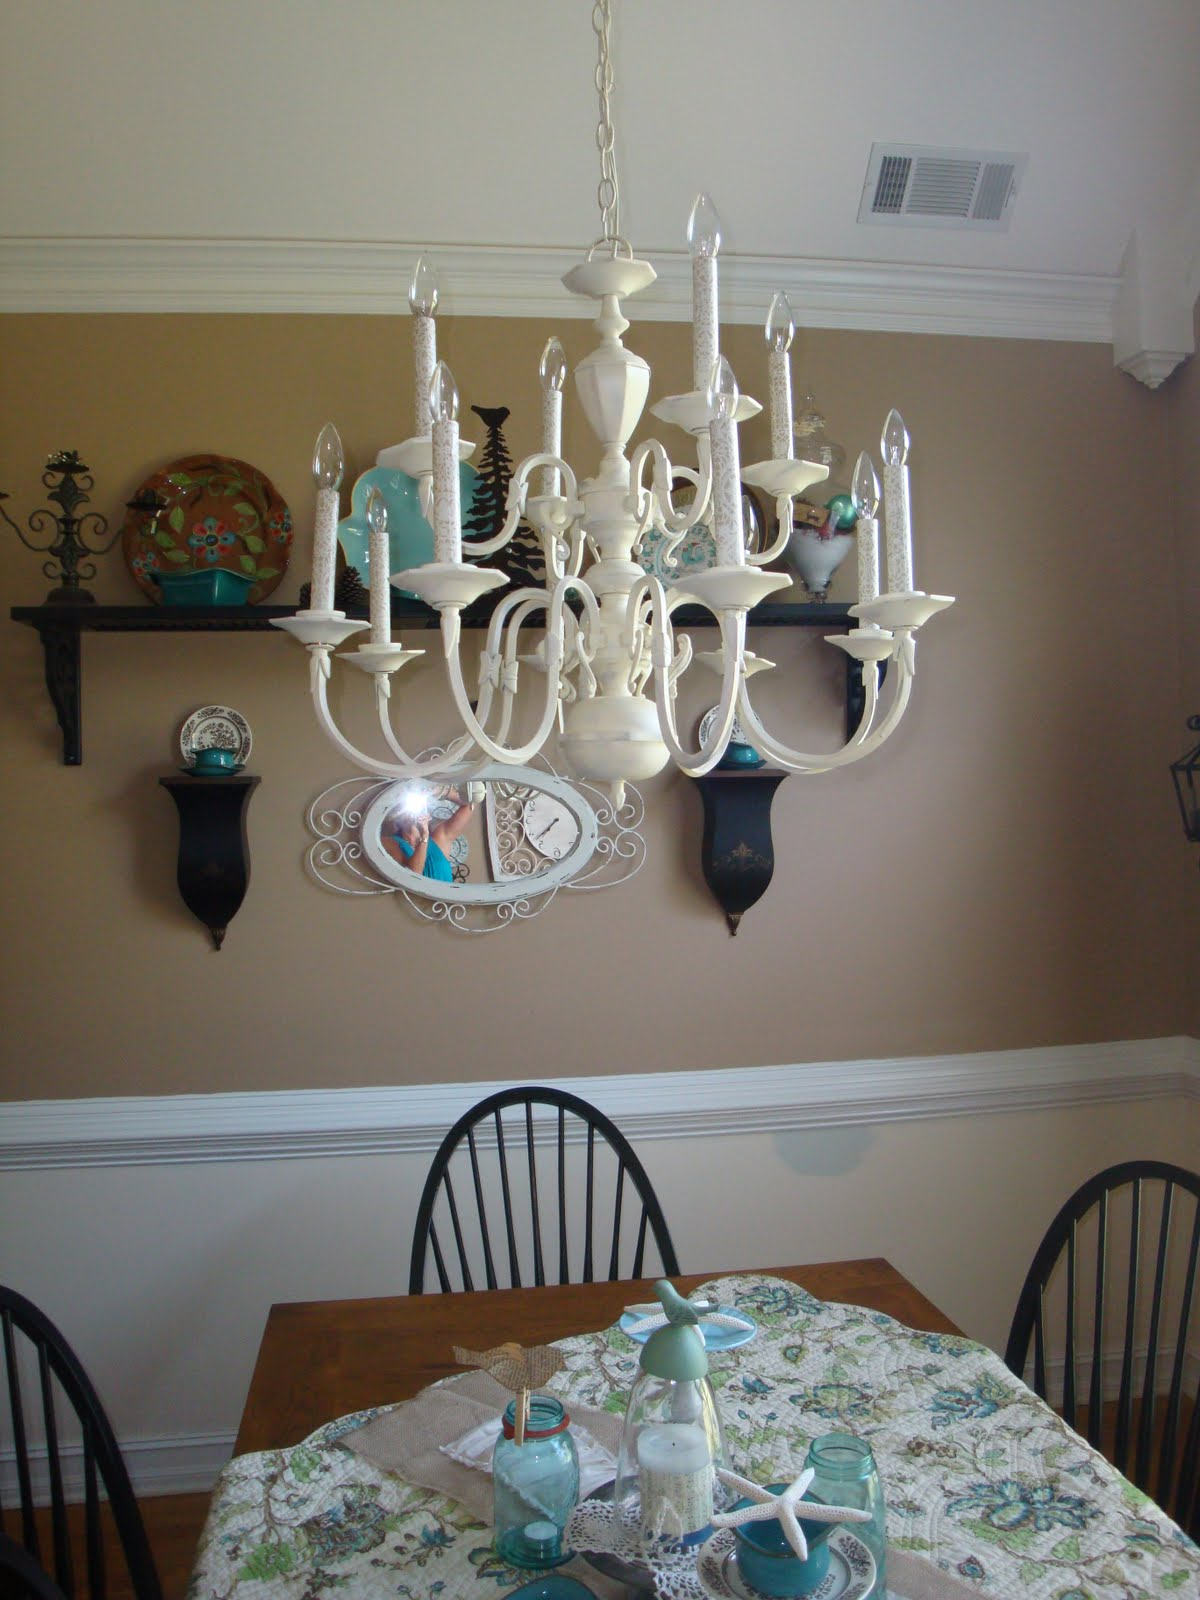 A Little Piece of Heaven: A $4 chandelier makeover